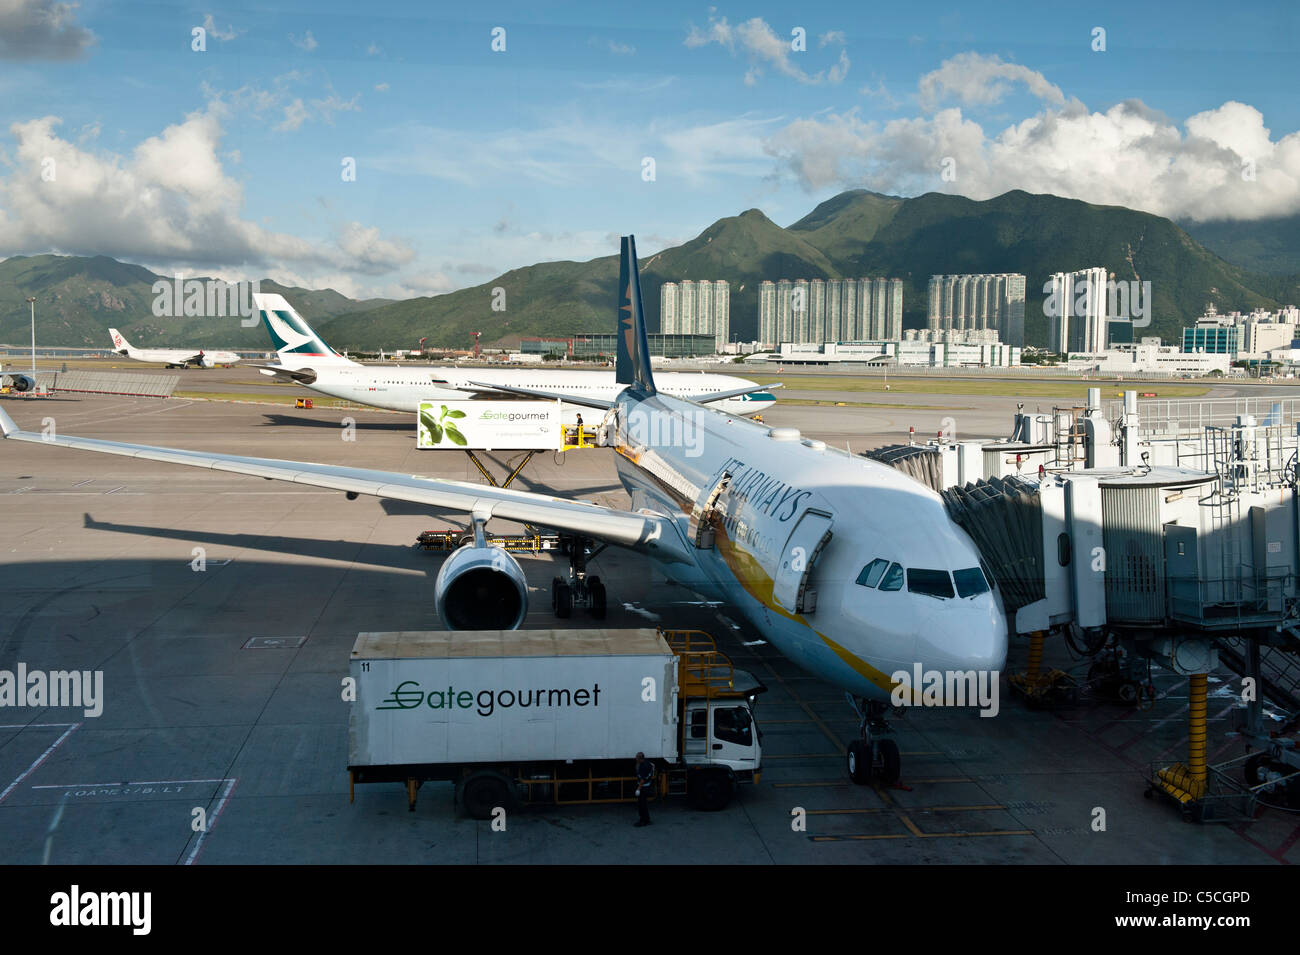 Airport Catering Stock Photos & Airport Catering Stock Images - Alamy